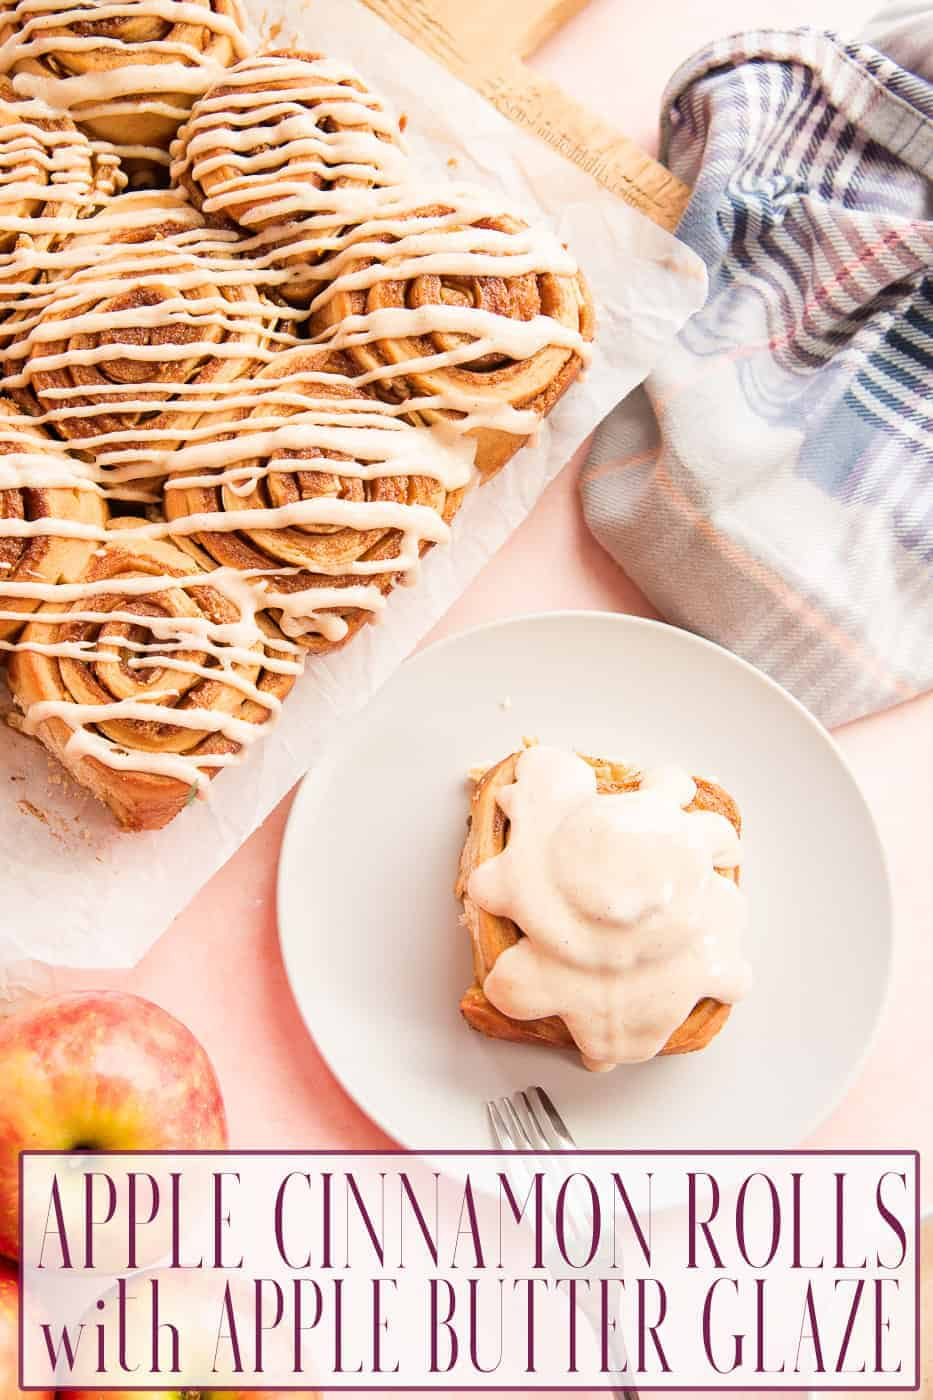 These Apple Cinnamon Rolls with Apple Butter Glaze are the best apple season has to offer. With apple butter baked into the bread dough and mixed into the cream cheese glaze, on top of the thin slices of apples rolled into the dough, you apple lover's have found your match. #apple #applerecipes #appleroll #applefritter #applepastries #applebakingrecipe #bakingapples #applecinnamon #breakfast #cinnamonrolls #creamcheeseglaze #applebutter #honeycrispapples #dessert #fallbaking #fallrecipes via @ediblesense